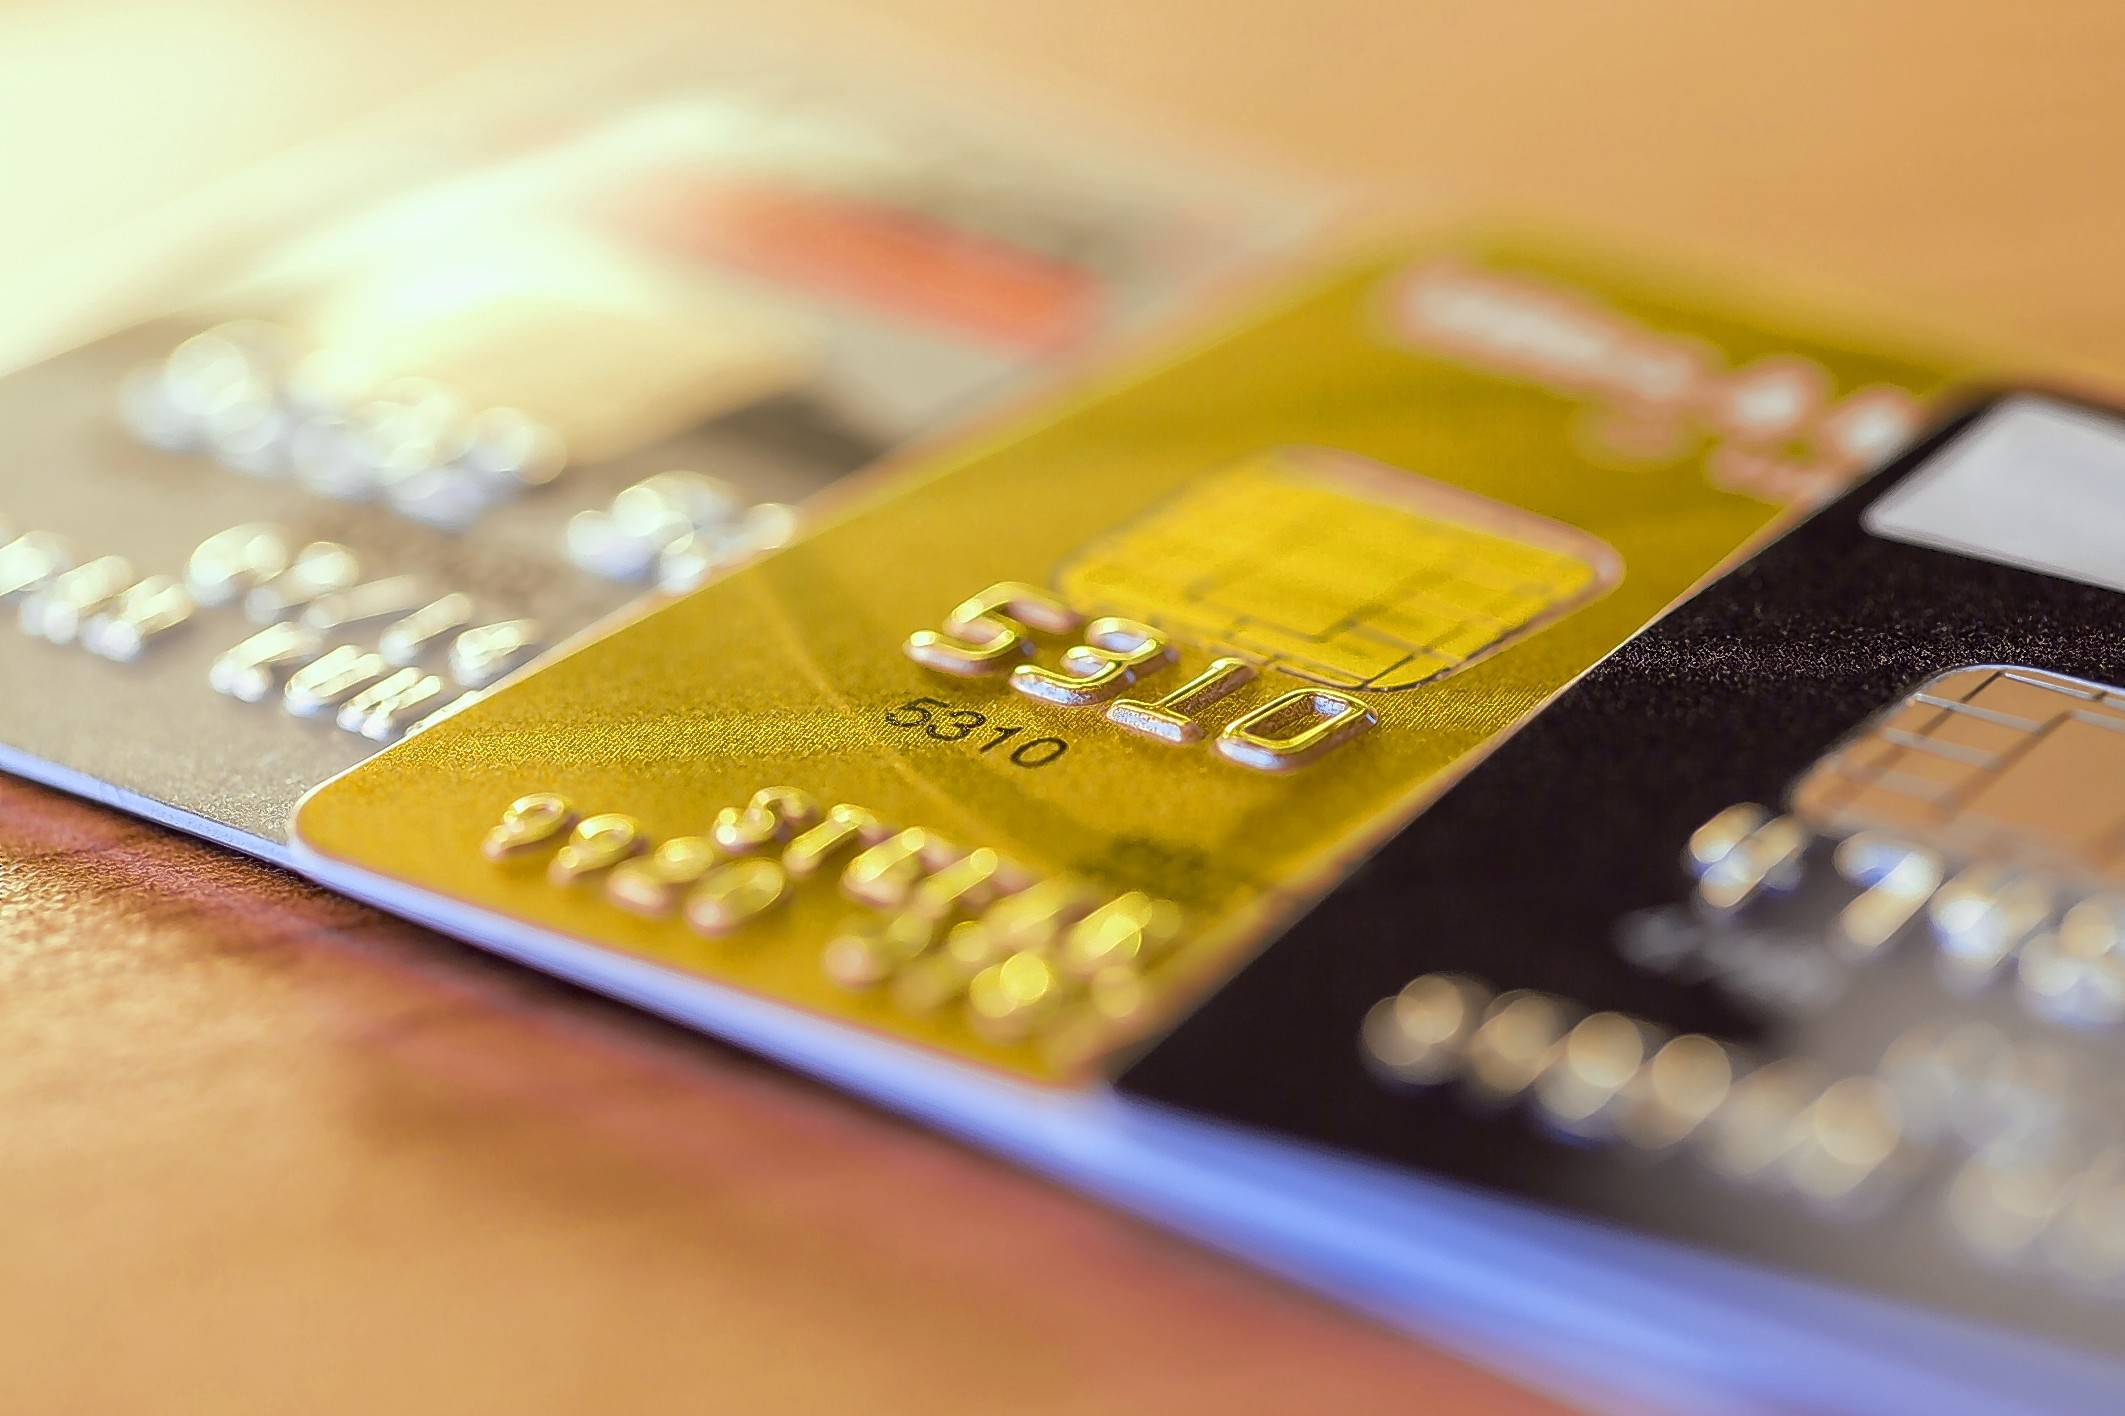 Sometimes a credit card can come in handy. When workers lose their jobs, a new study found, a higher credit limit allows them to take longer to find a new one.